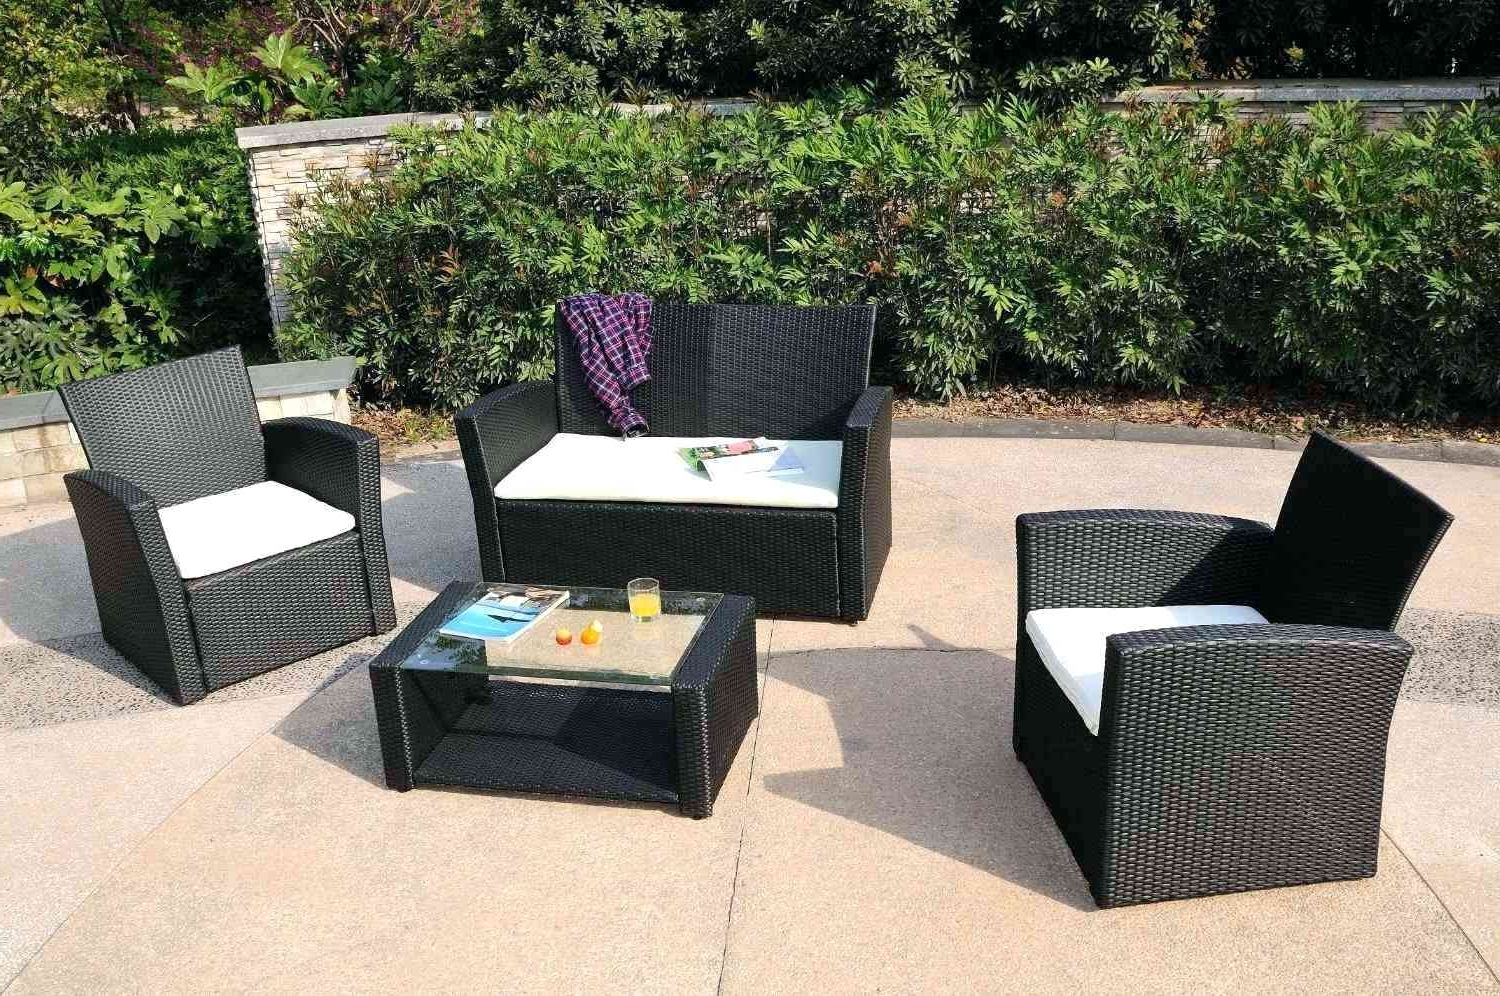 Rocking Chairs Adelaide With Recent Rattan Outdoor Chairs Garden Rocking Chair Uk Wicker Adelaide (View 16 of 20)